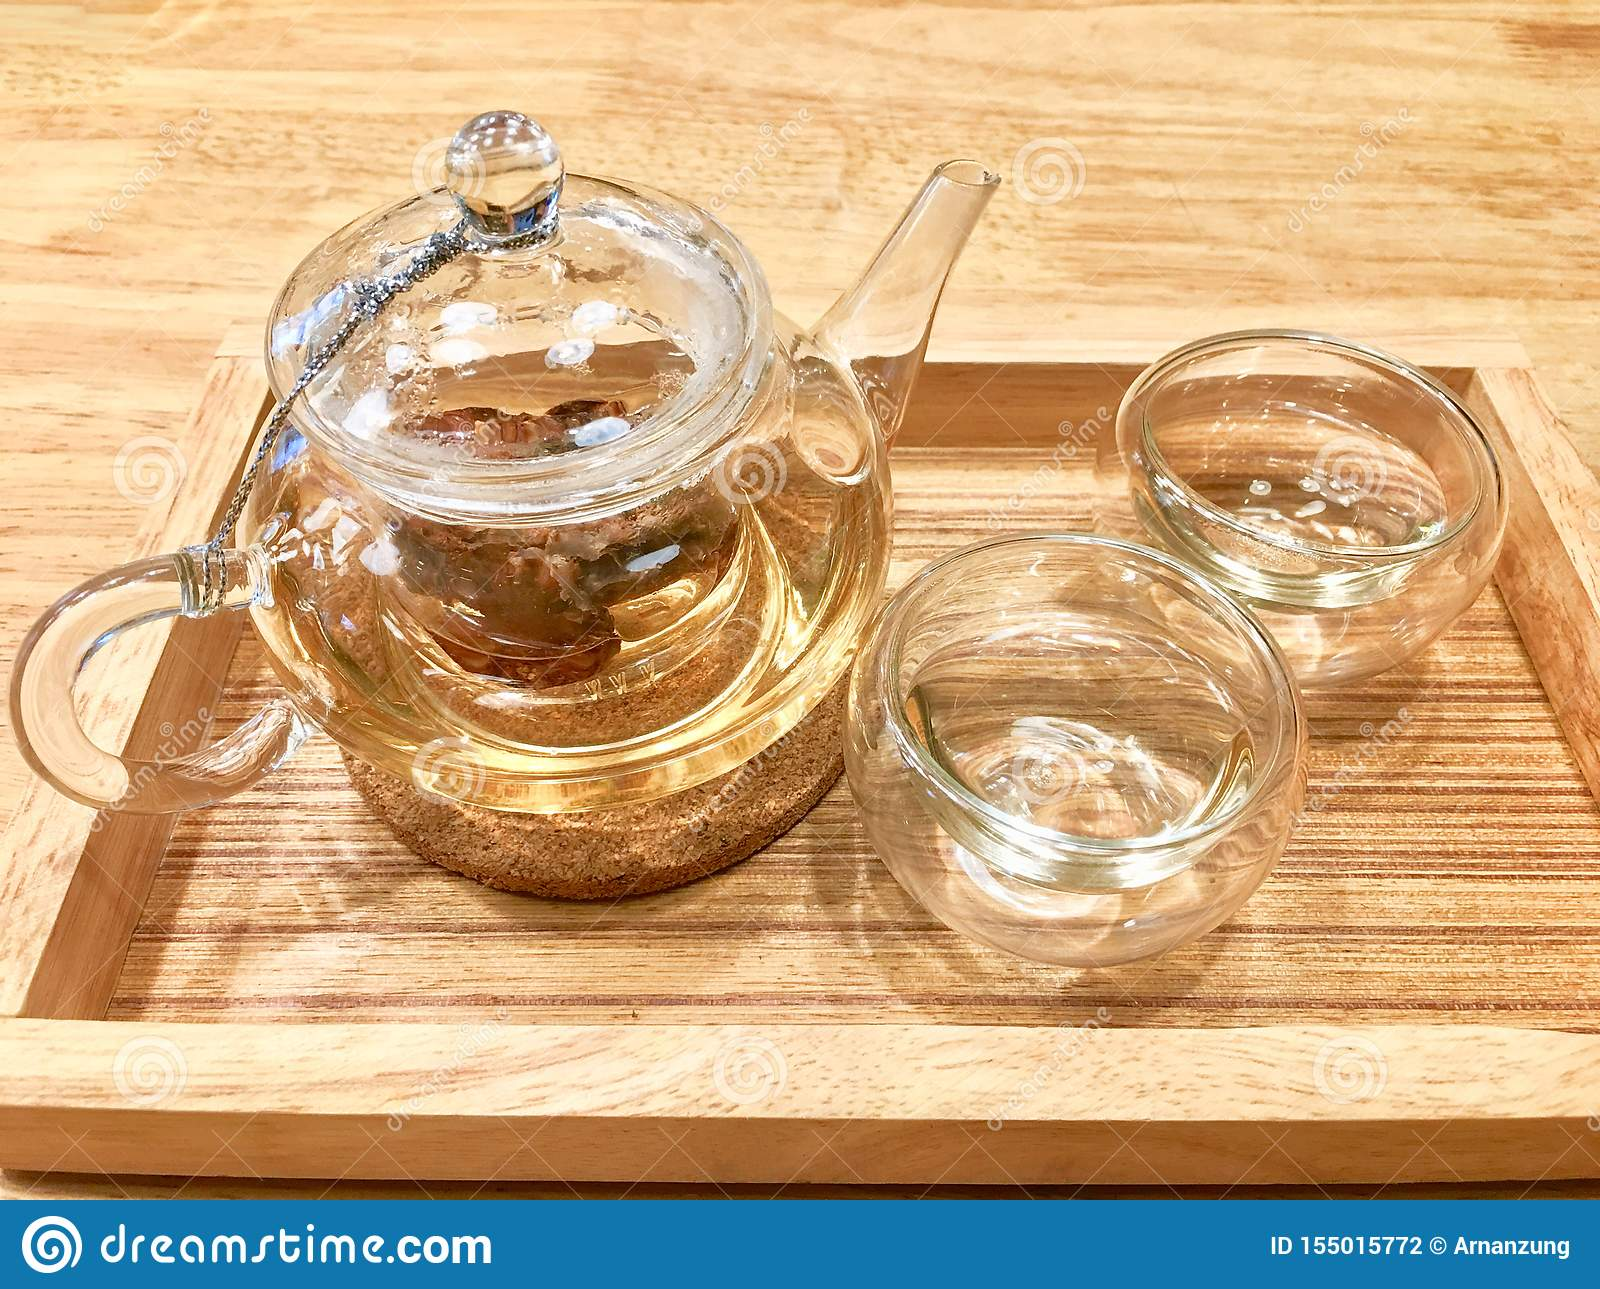 Hot herbal tea inside transparent cup and glass jar on the light brown wooden tray put on wooden table.